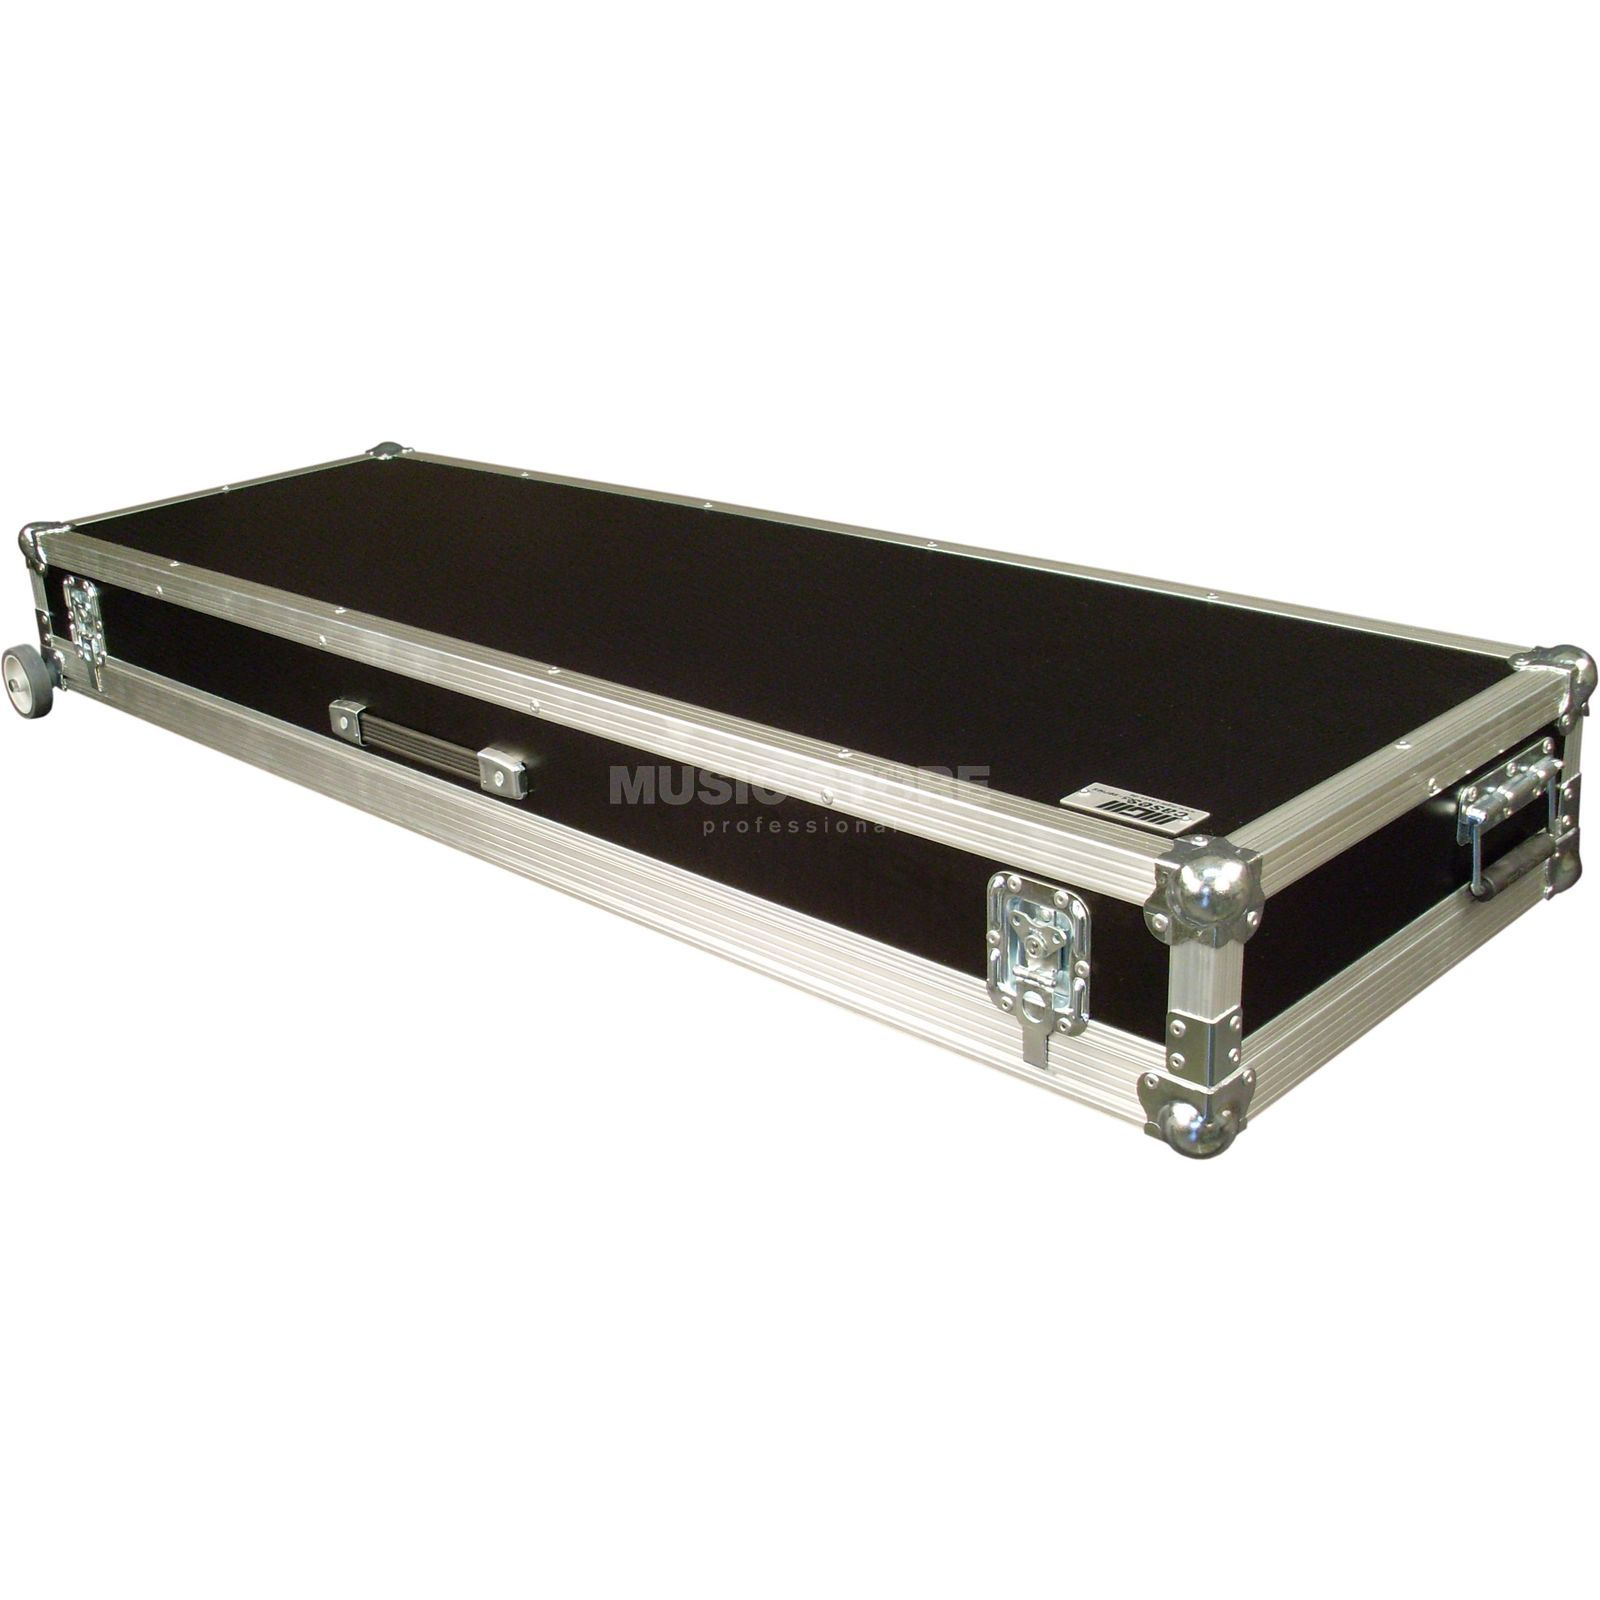 MGM RS Case Roland RD-700GX/NX with 3 handles and castors Produktbillede